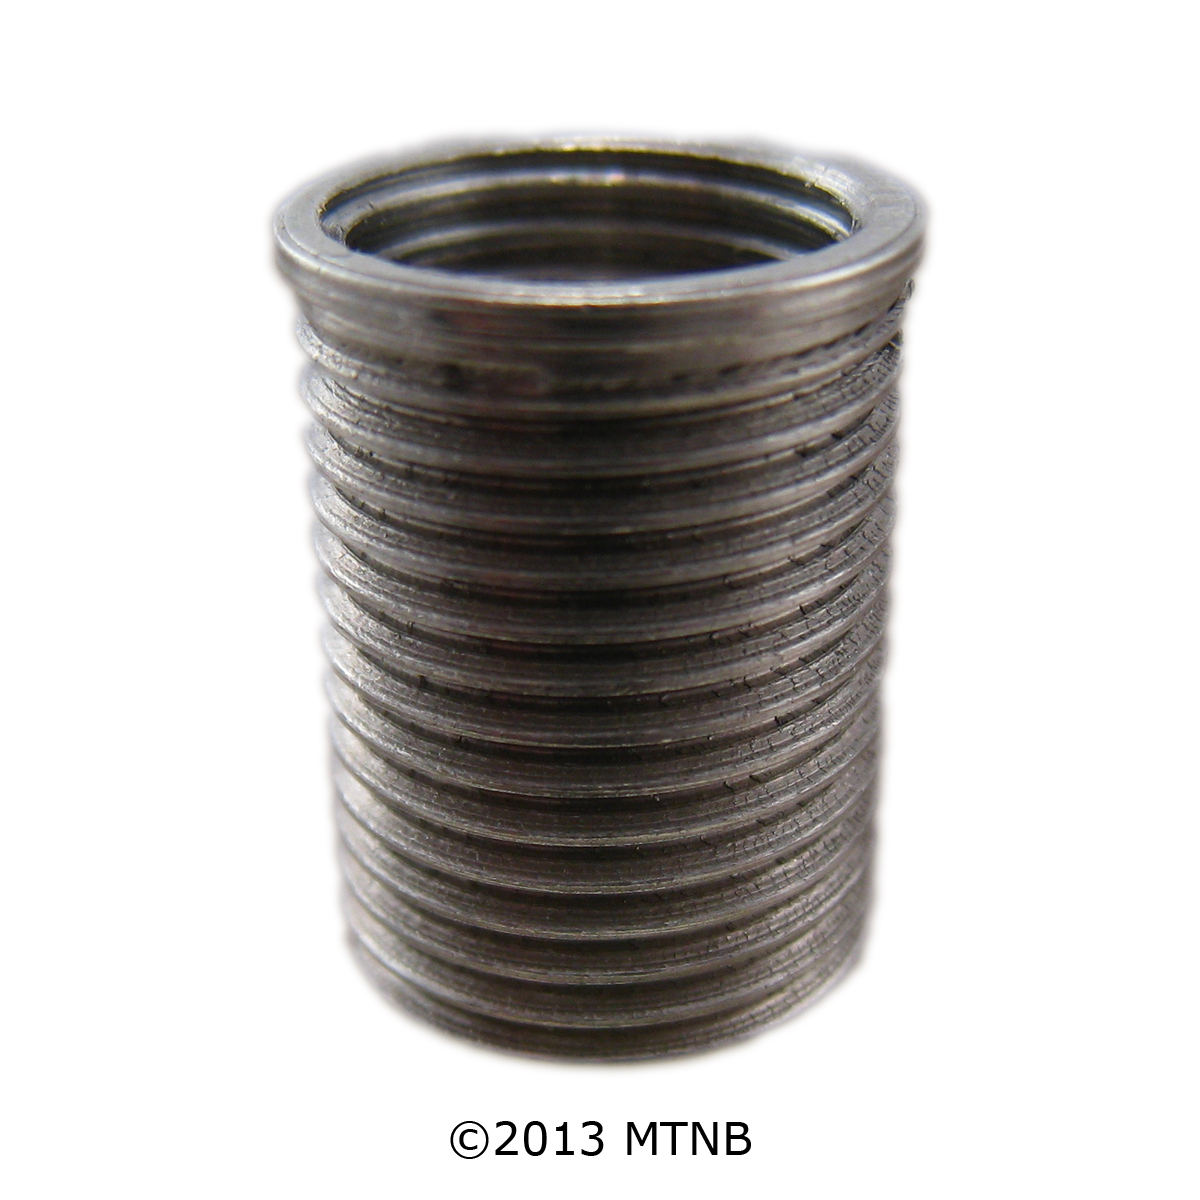 Stainless steel inserts  thread doctor